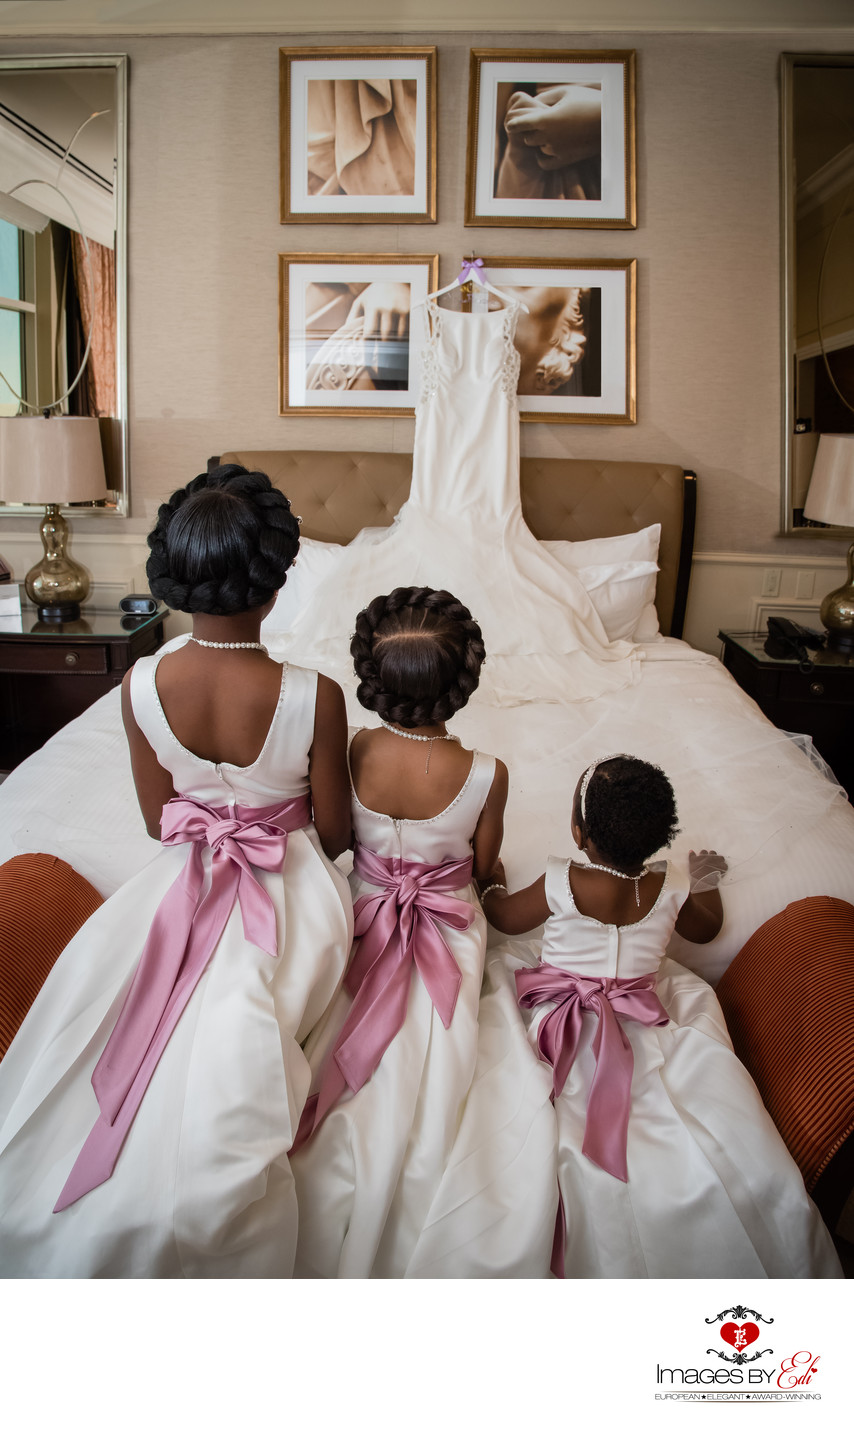 Las Vegas Venetian Resort getting ready photo with flower girls |Las Vegas Wedding Photographer | Las Vegas  Elopement | Images by EDI